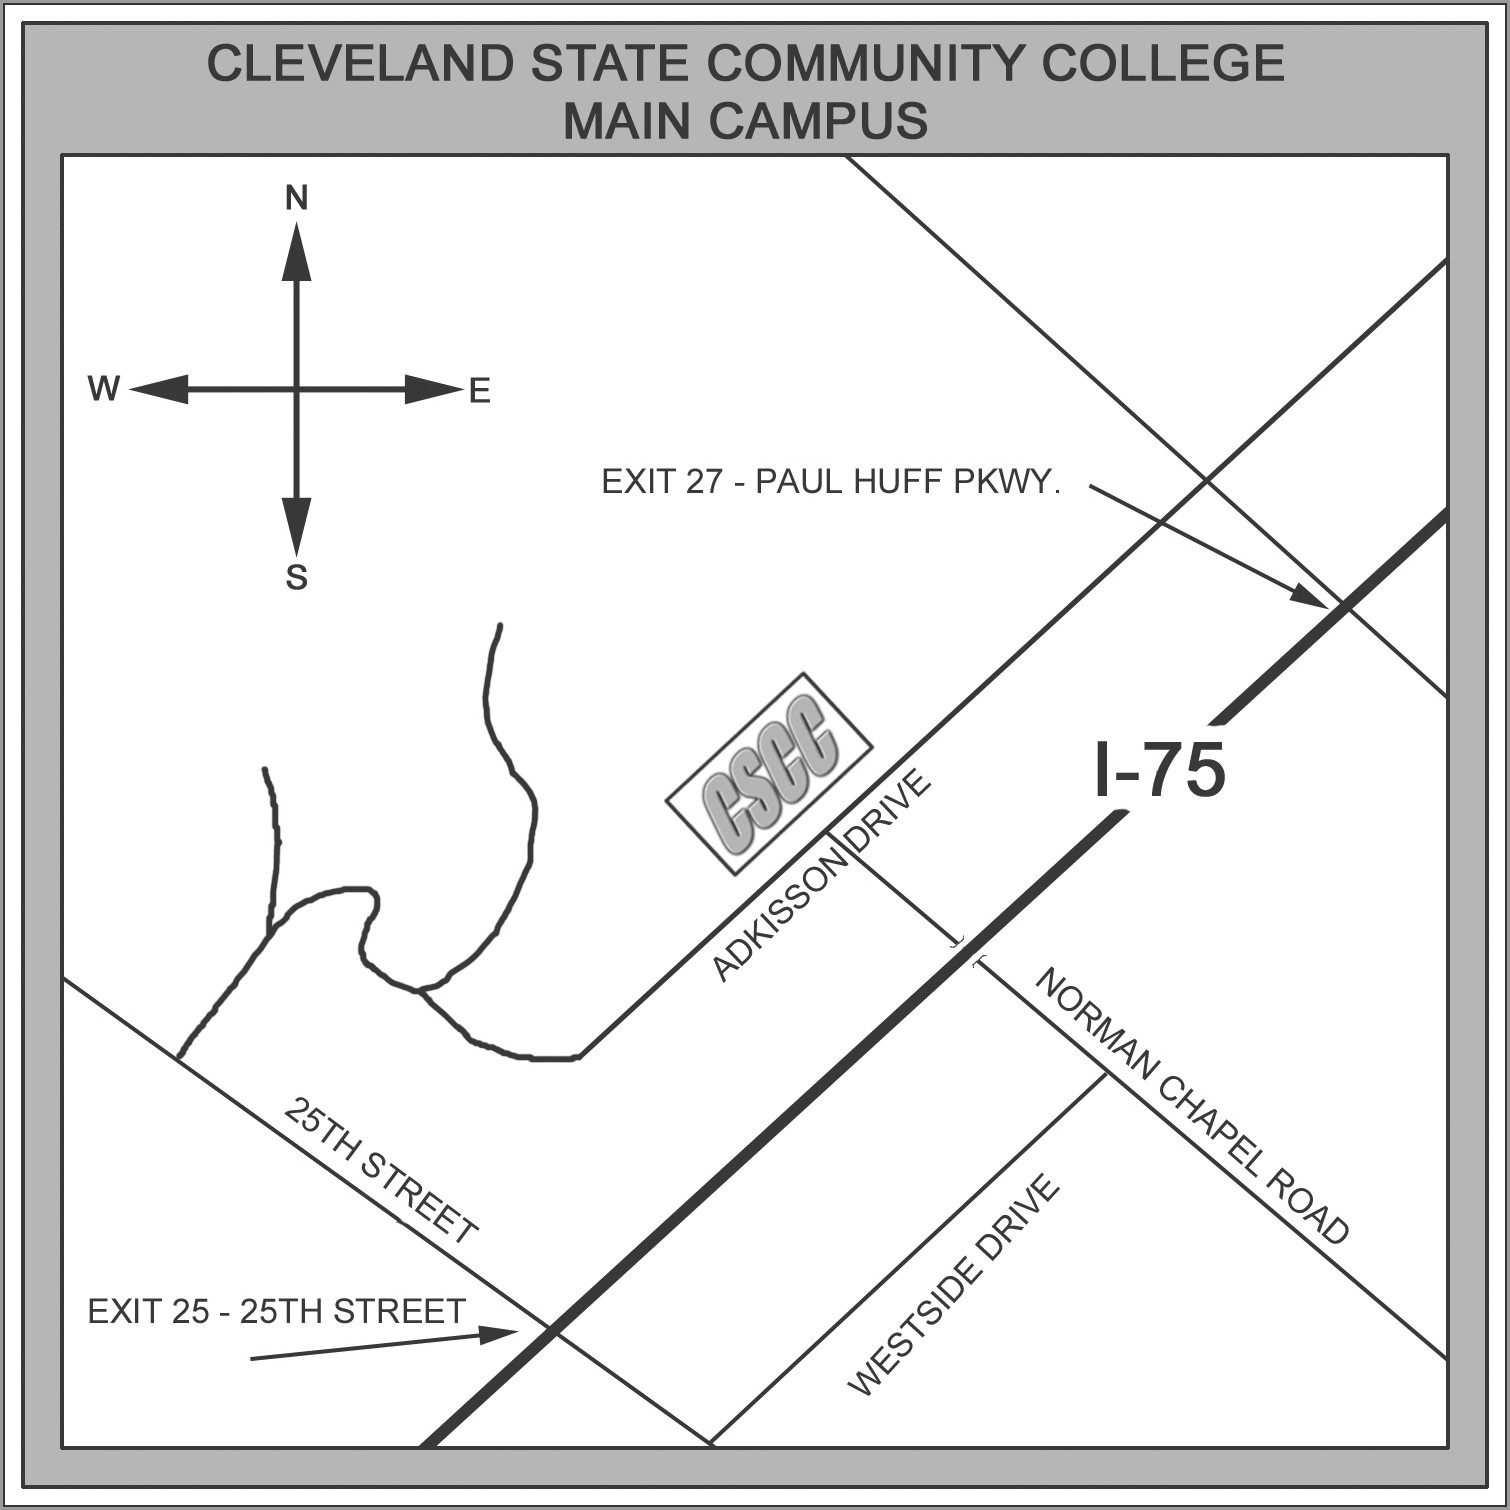 Cleveland State Community College Campus Map